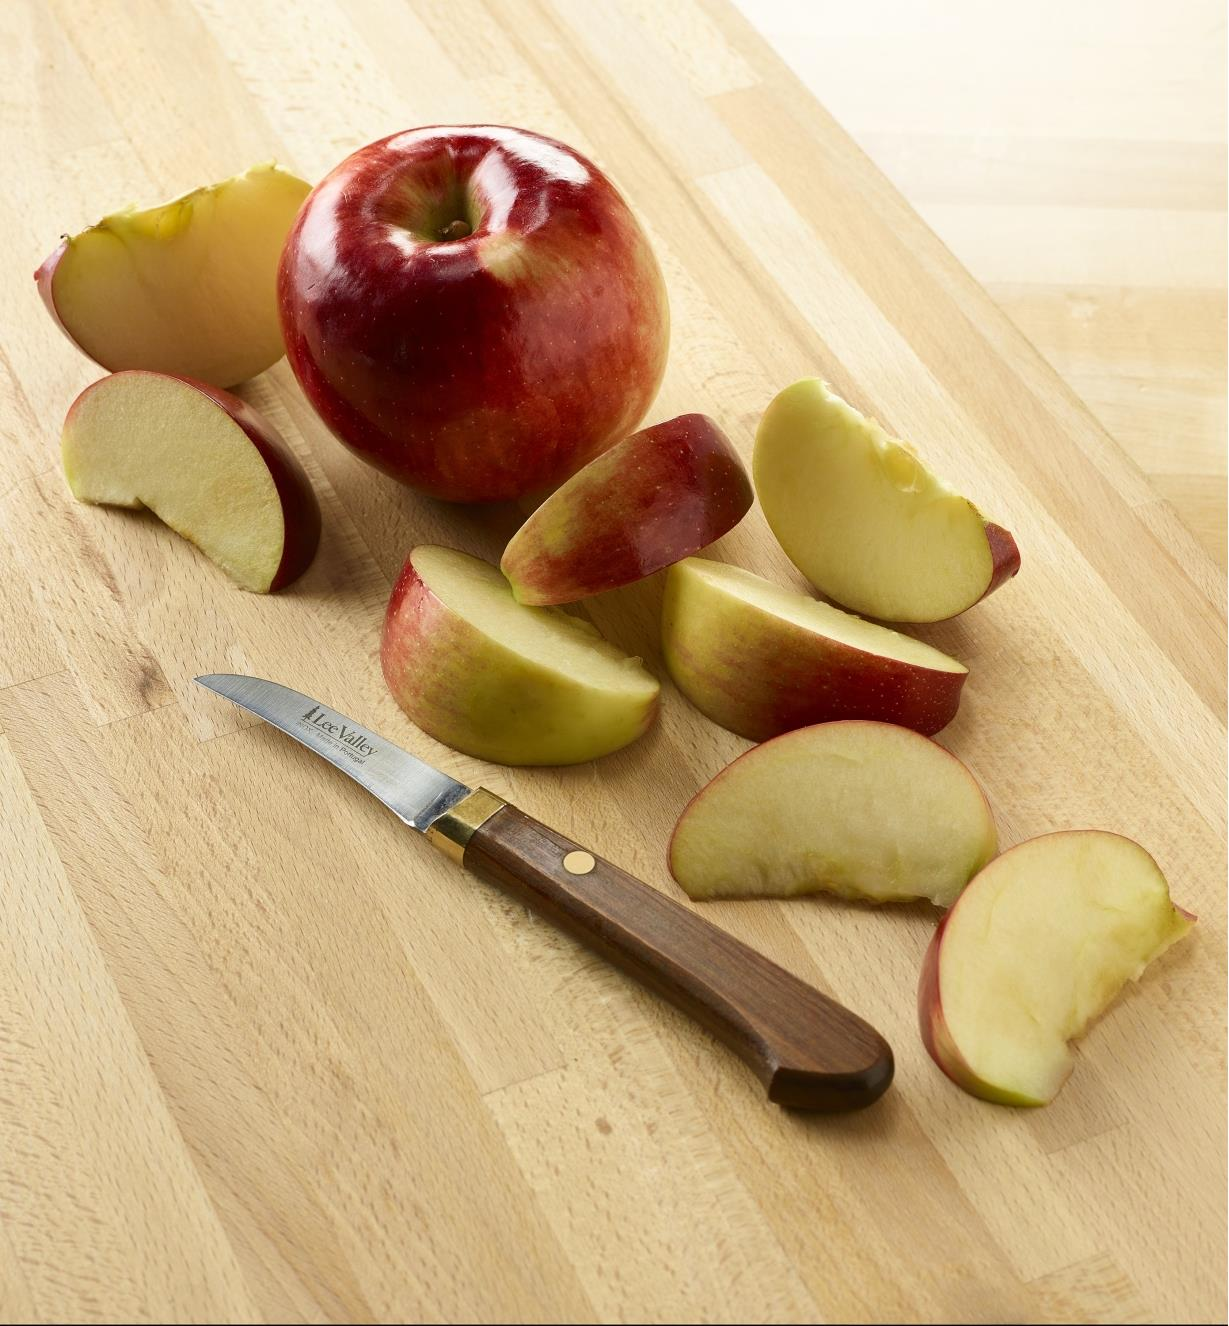 Stainless-Steel Paring Knife on a cutting board beside sliced apples